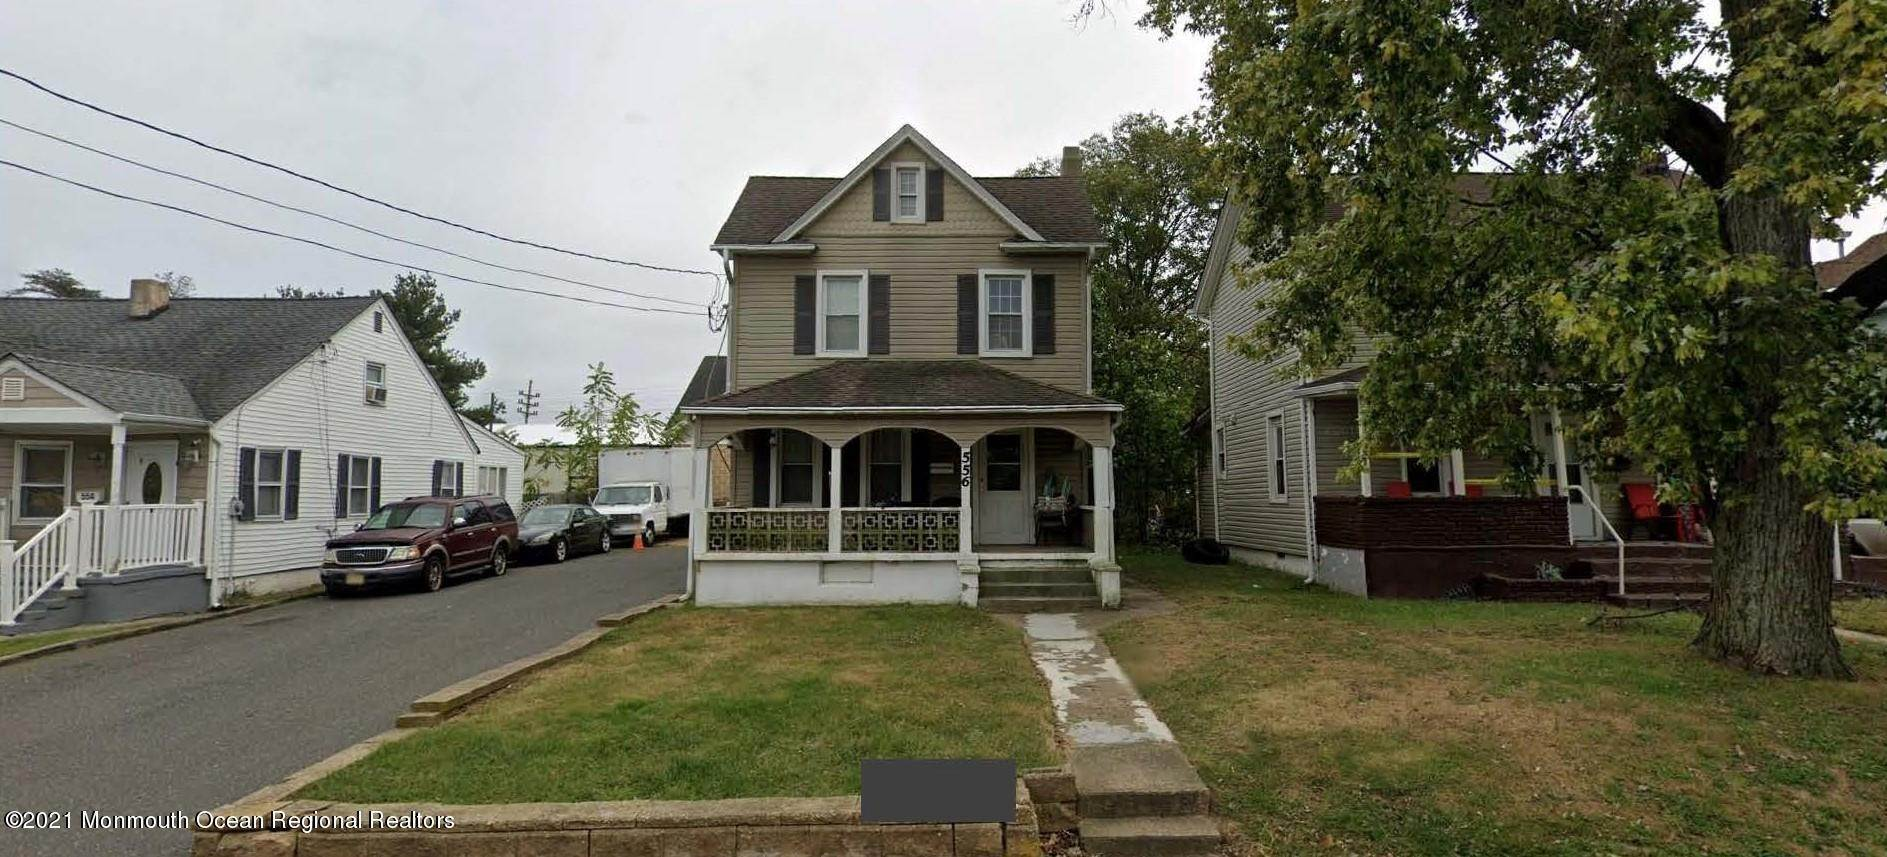 2. Single Family Home for Sale at 556 Joline Avenue Long Branch, New Jersey, 07740 United States